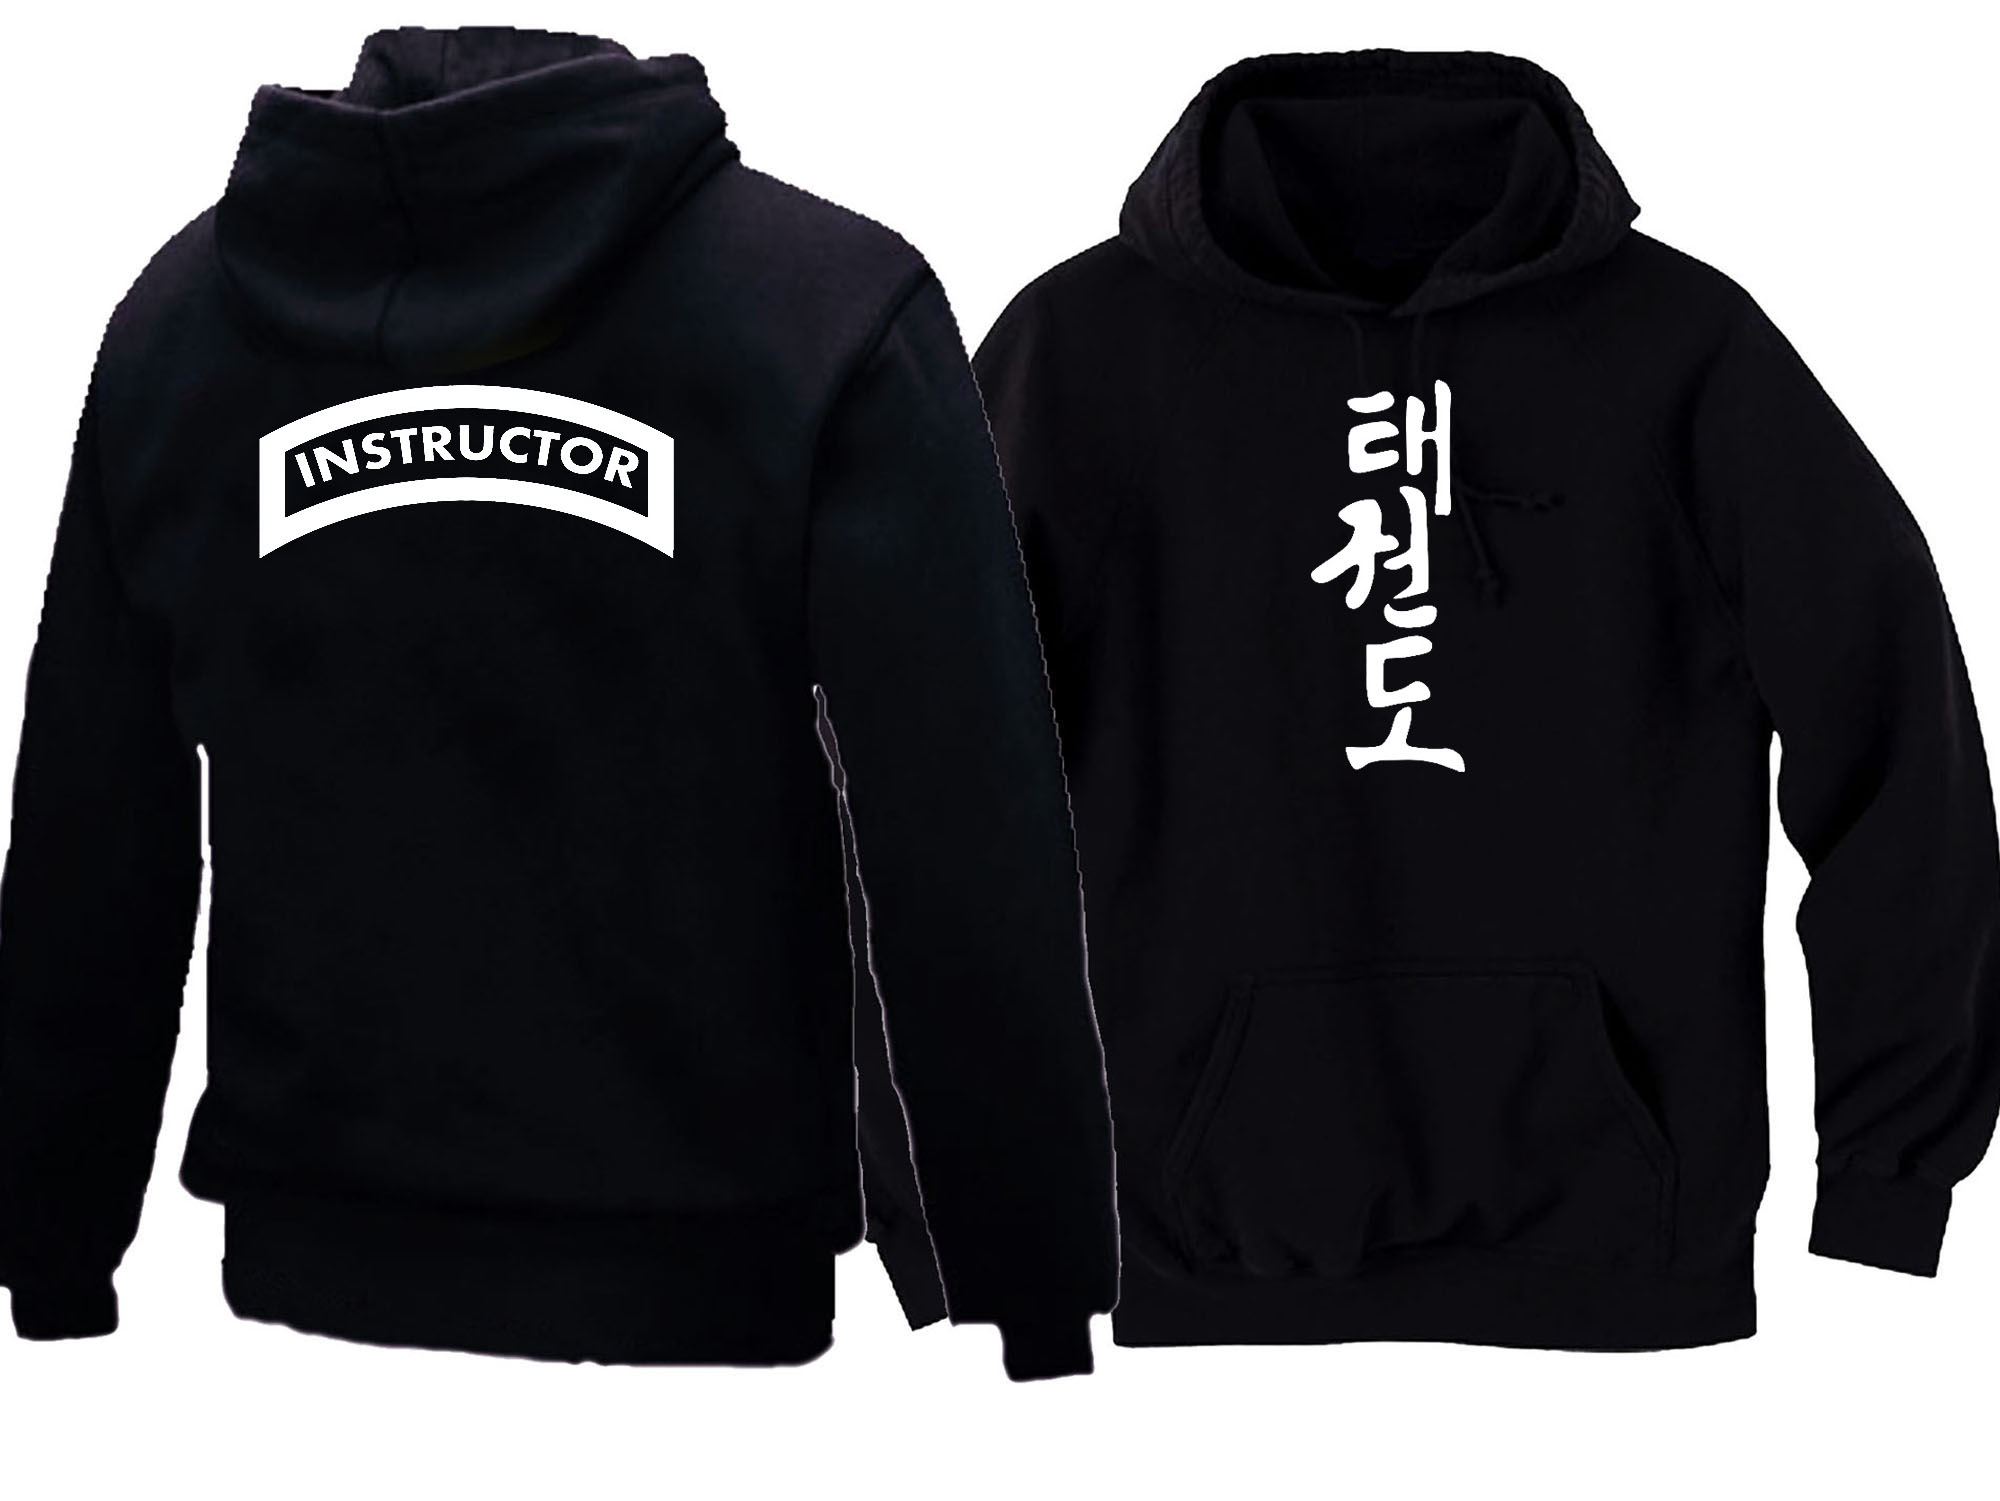 Taekwondo hoodies - My Cool T-Shirt